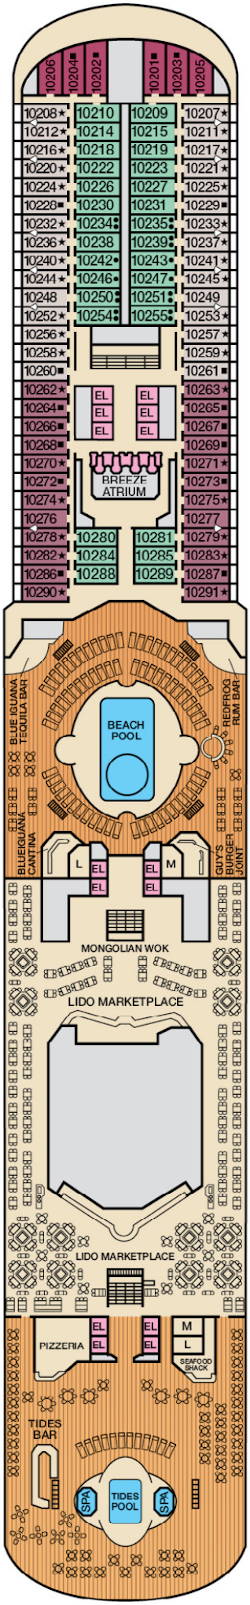 Carnival Breeze Lido Deck Plan